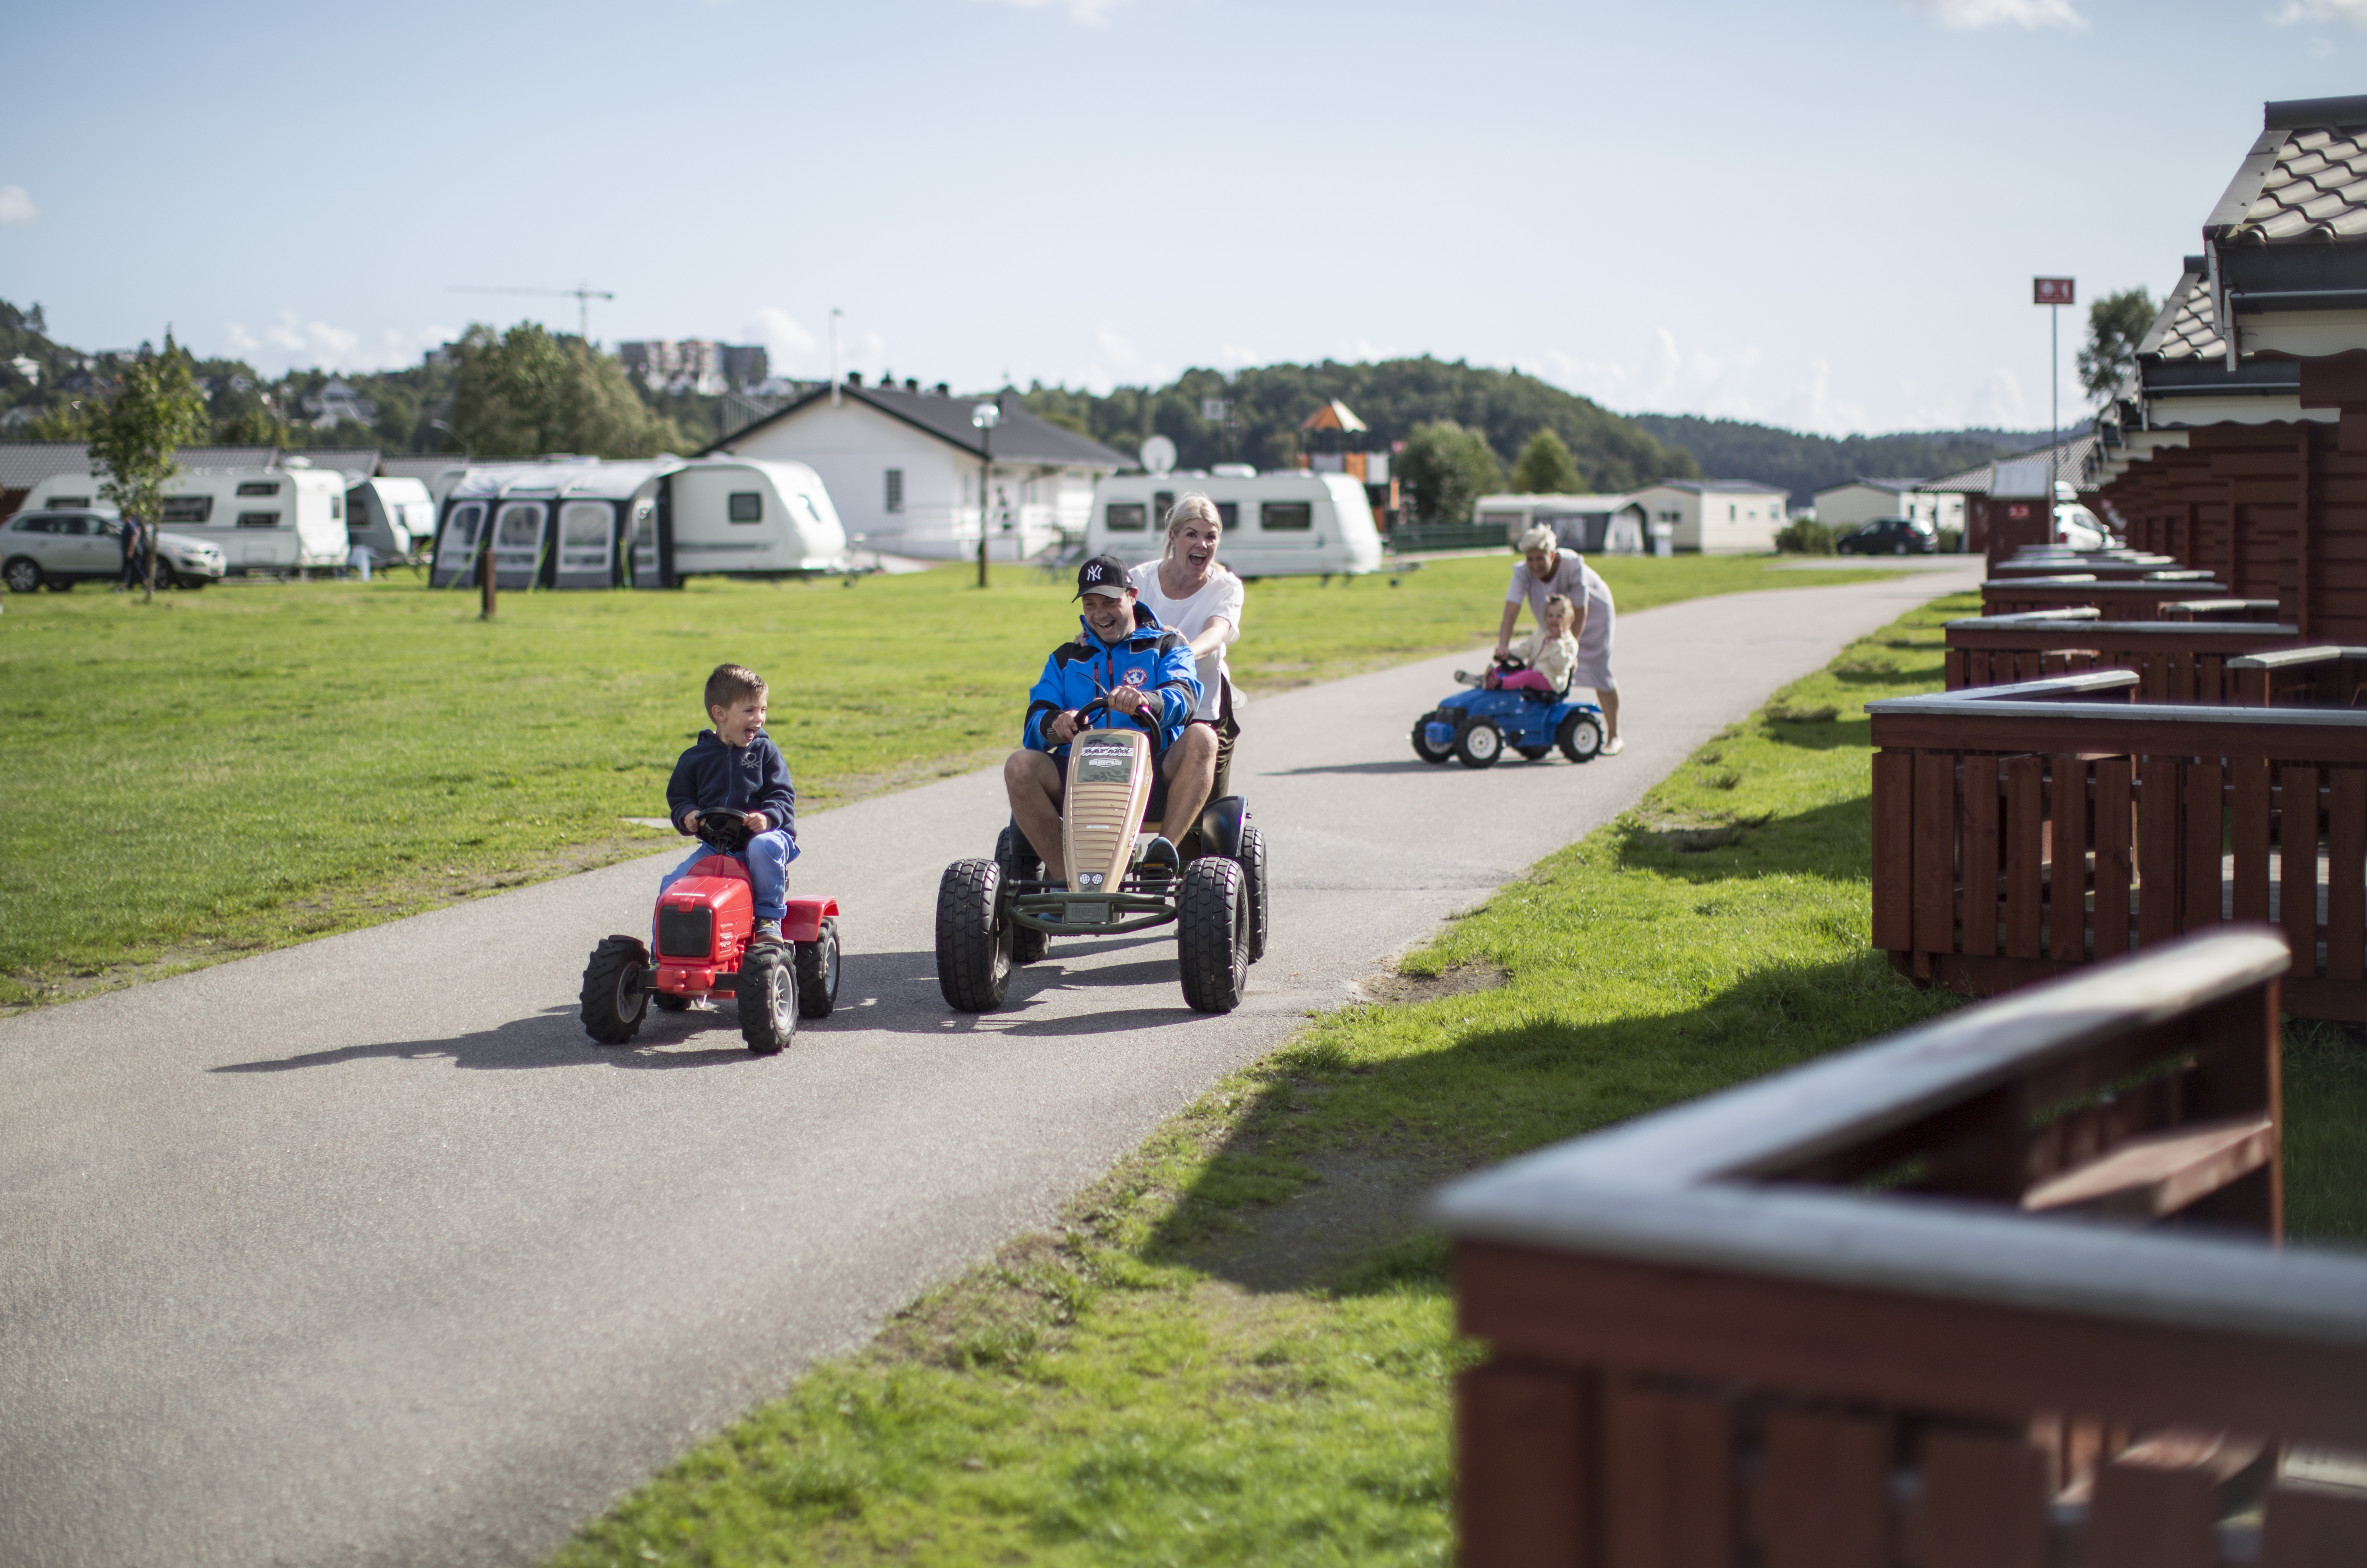 camping in kristiansand das offizielle reiseportal f252r